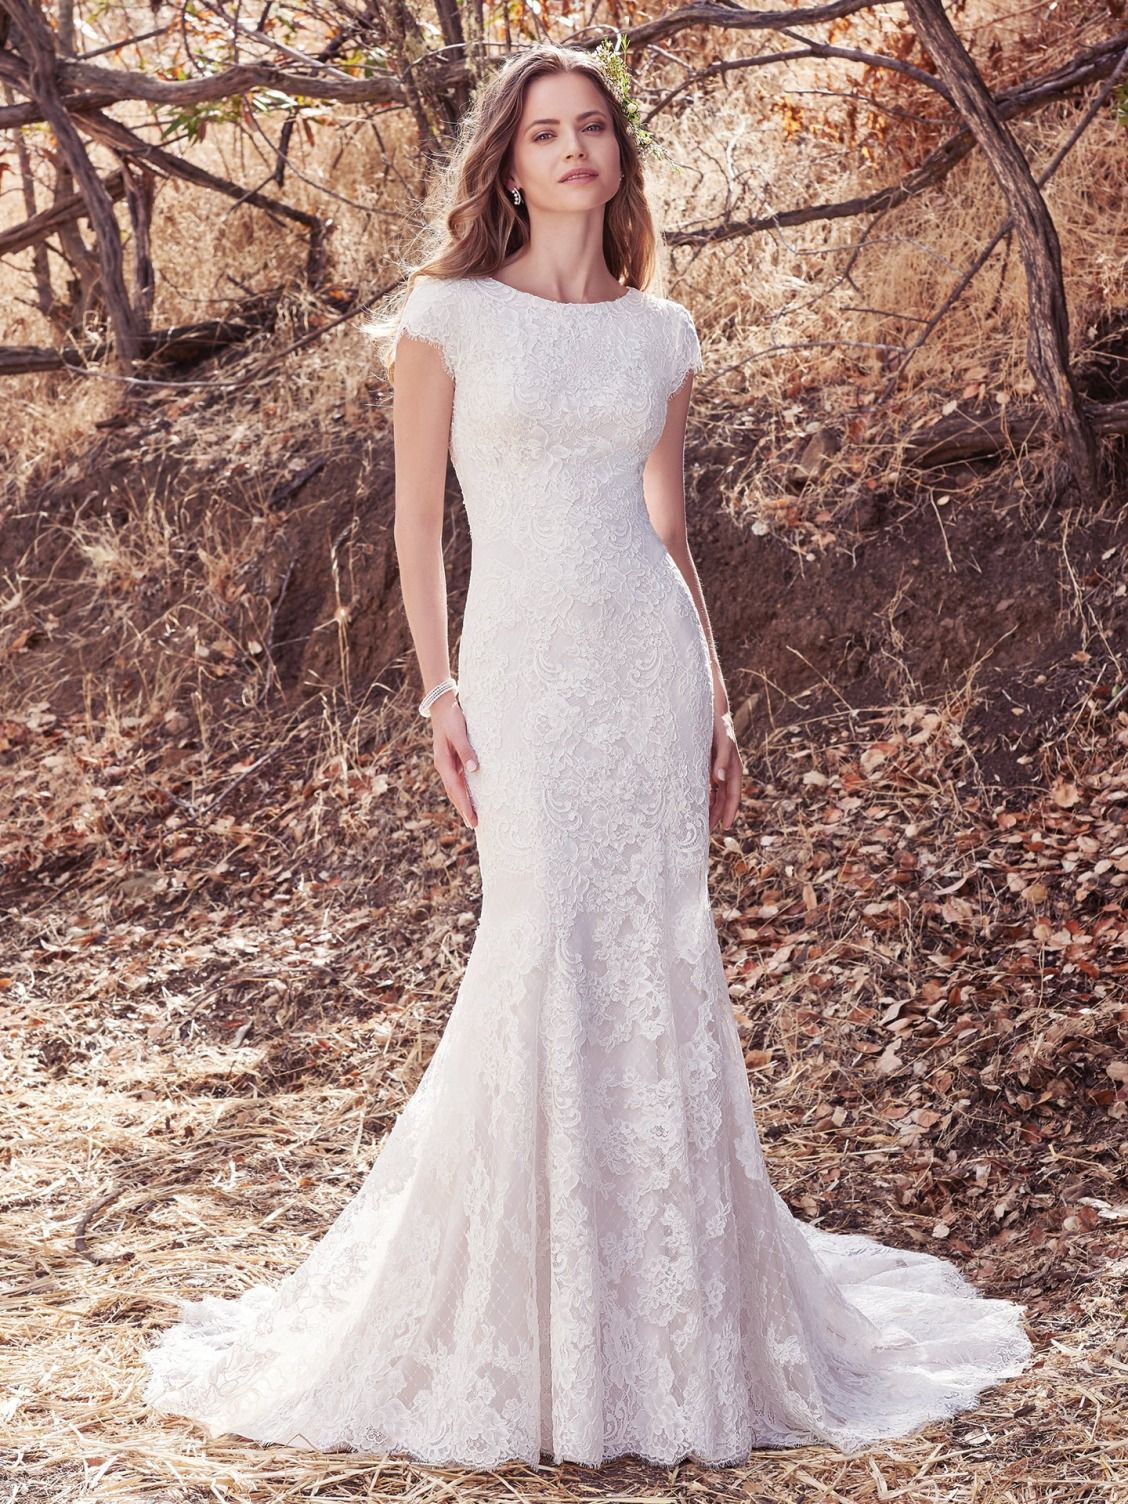 HUDSON LYNETTE by Maggie Sottero Wedding Dresses in 2019  70821db7ebca